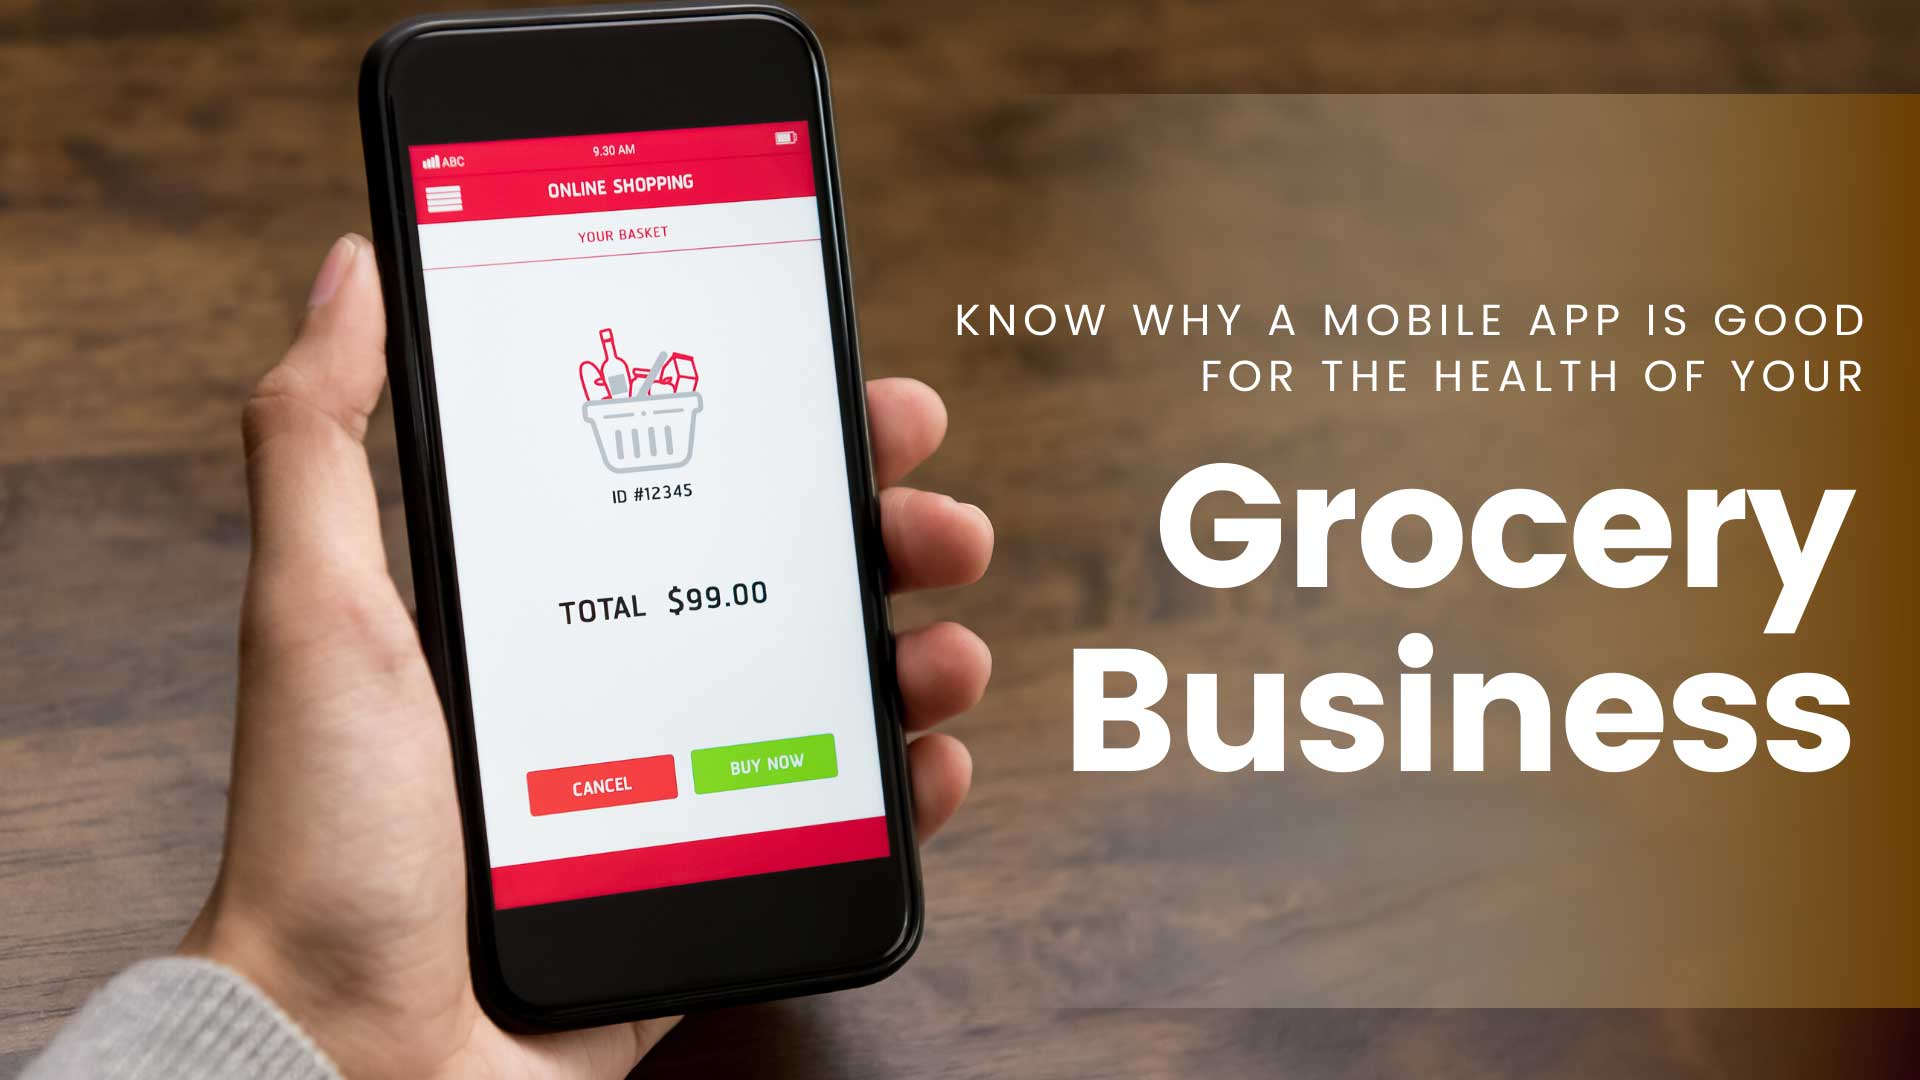 Know Why a Mobile App is Good for The Health of Your Grocery Business